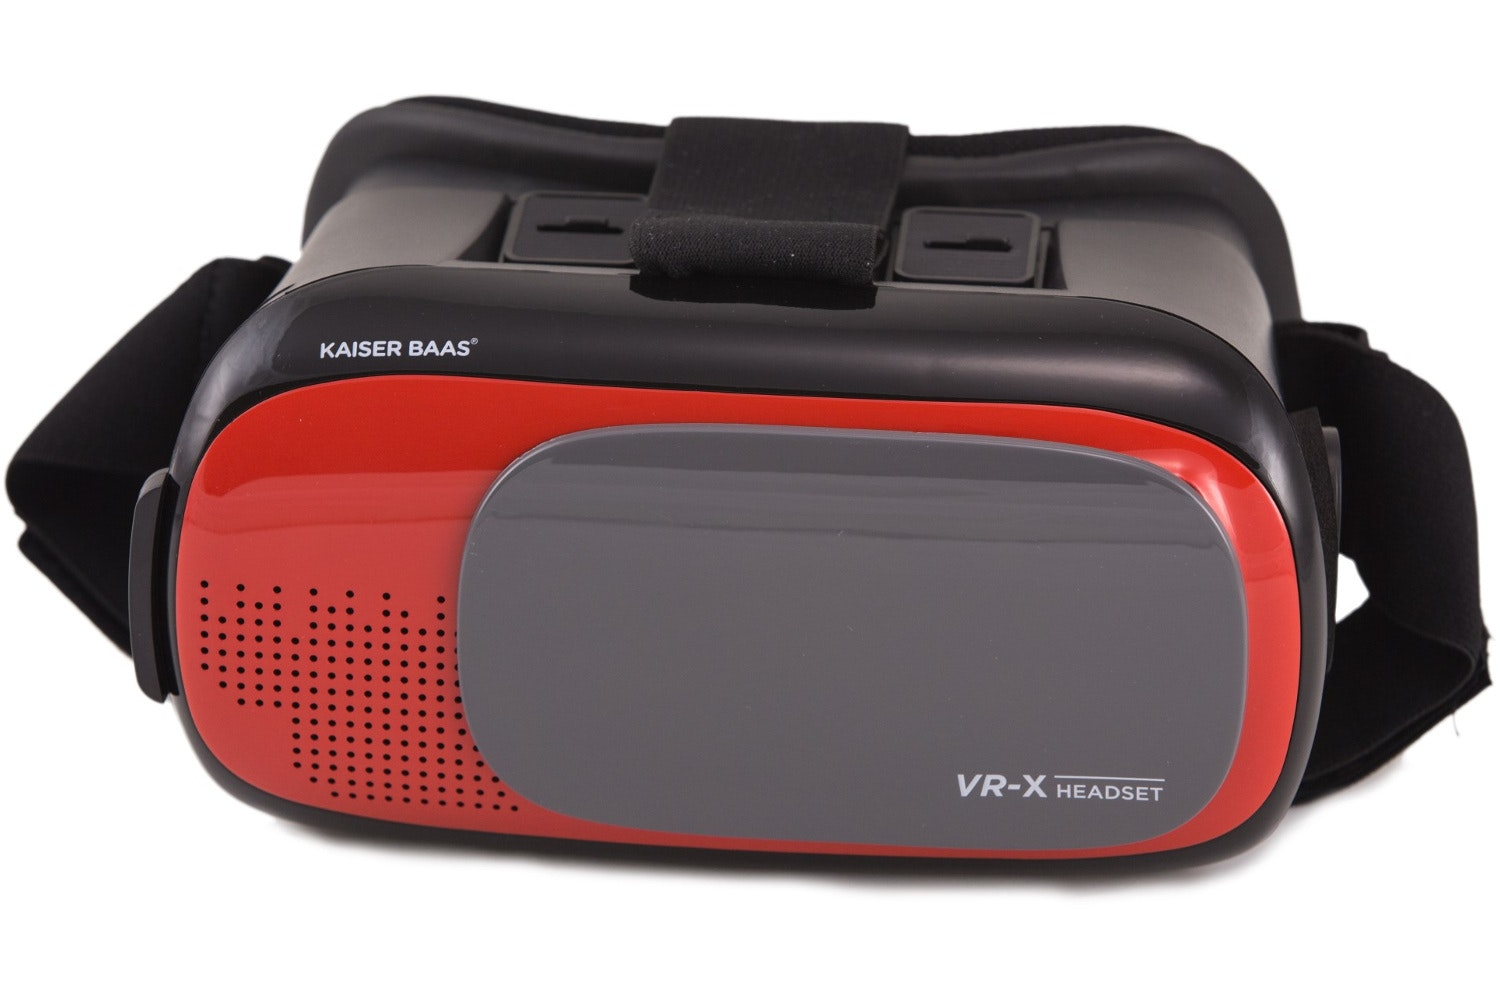 Kaiser Baas VR-X Virtual Reality VR headset